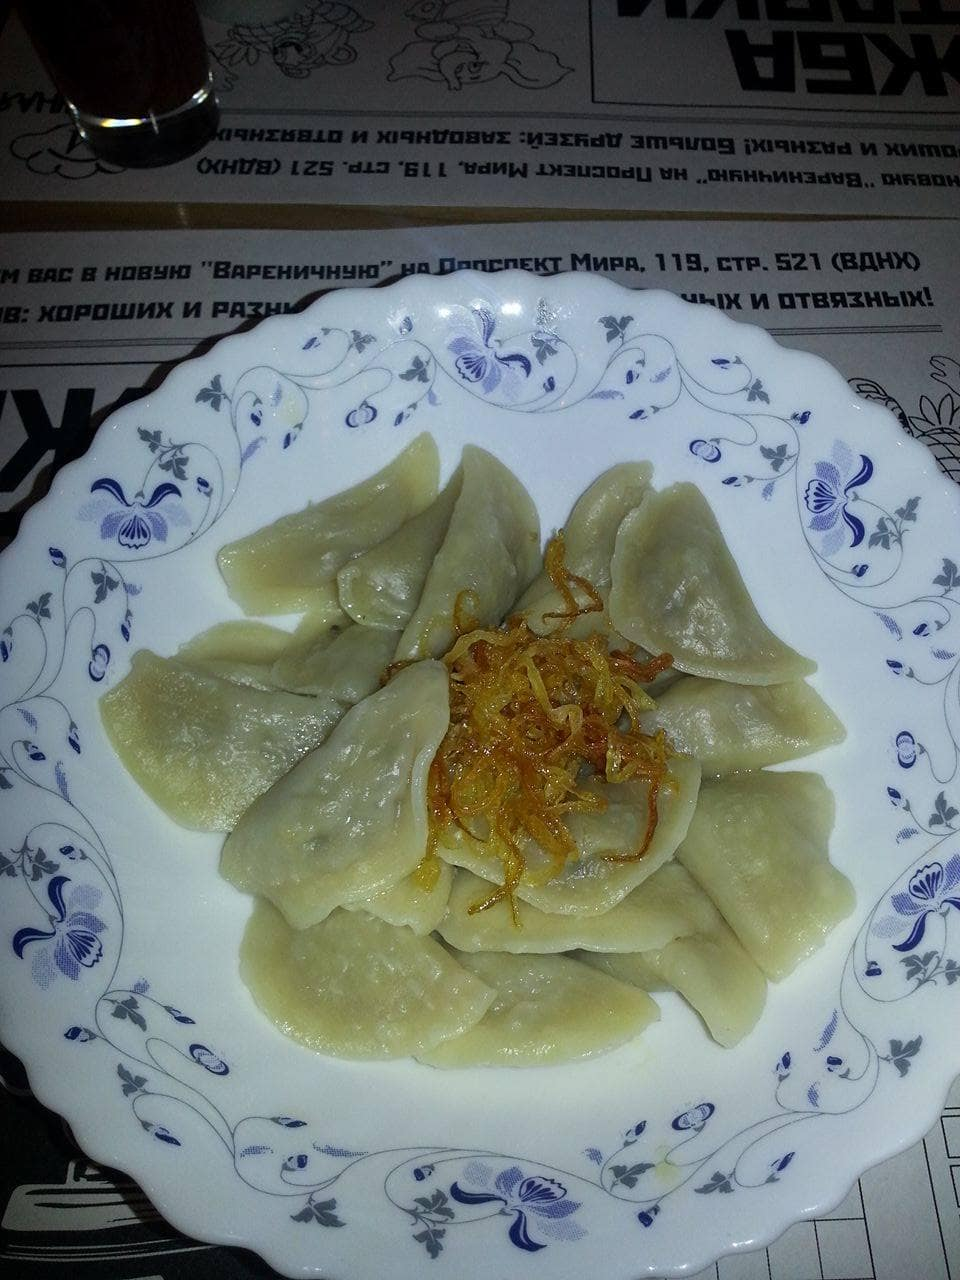 Pelmeni is typical to eat when travel Russia.